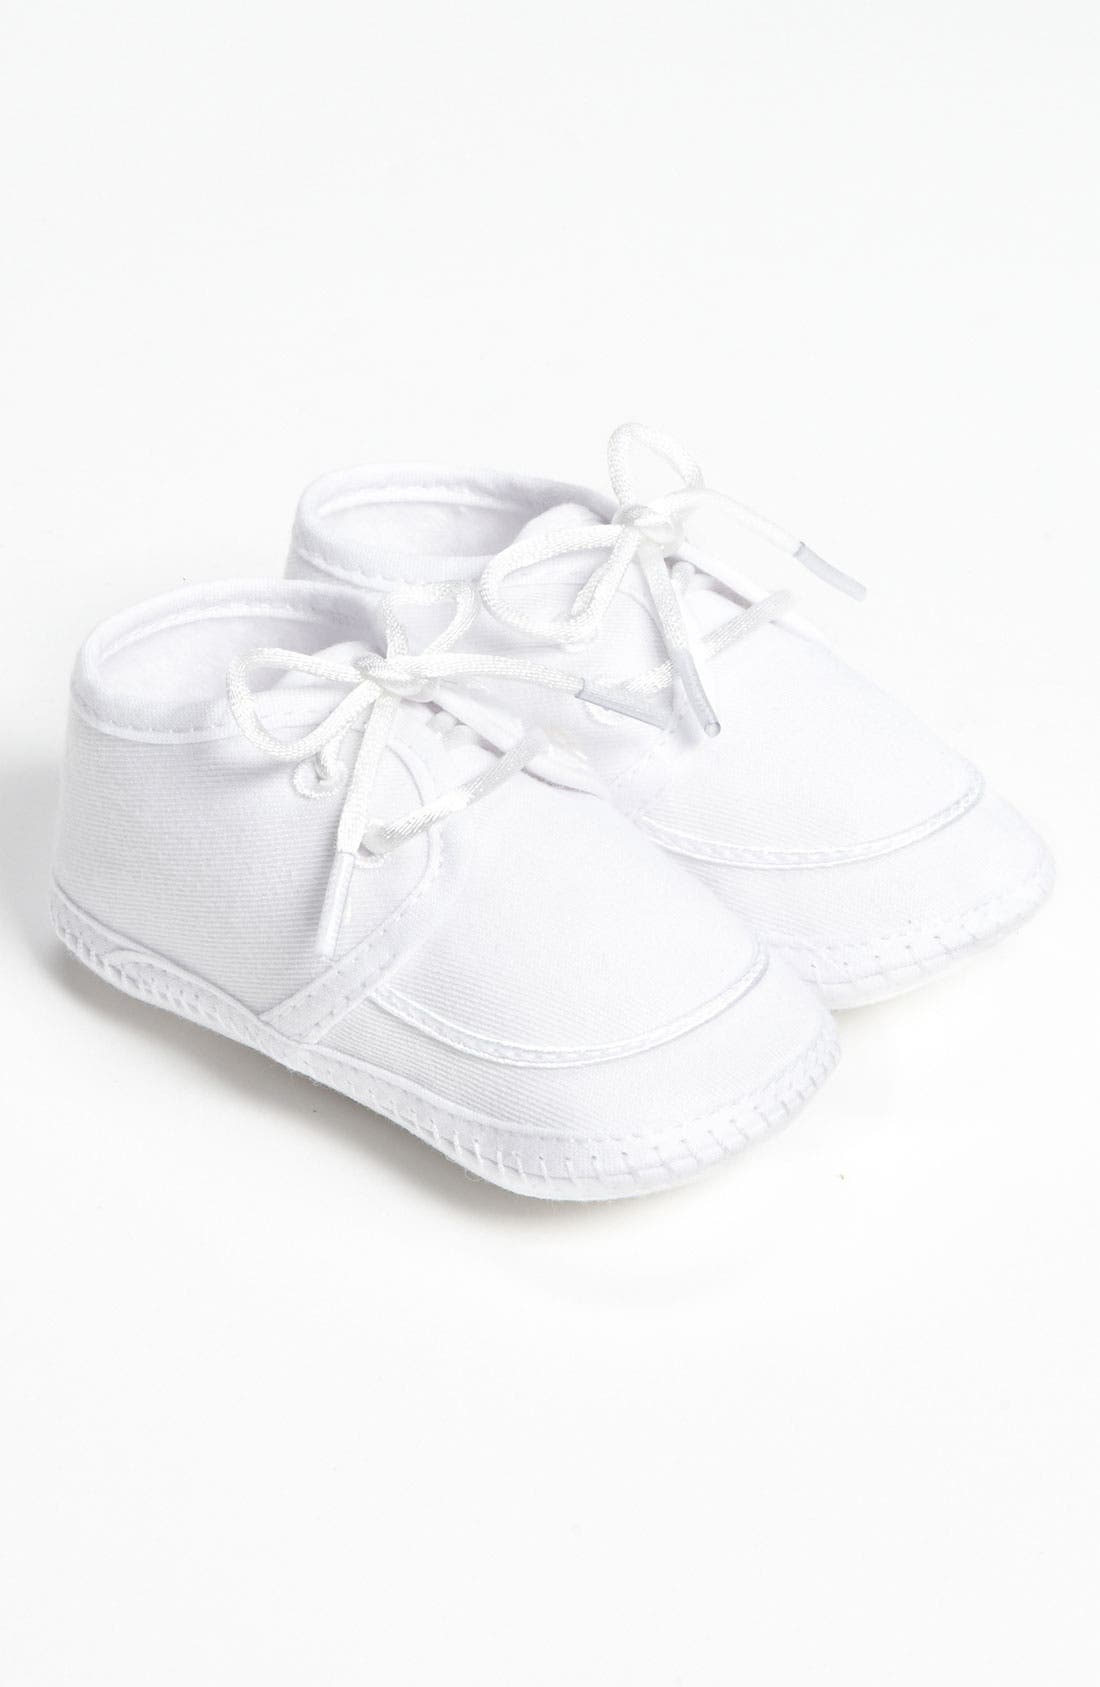 Alternate Image 1 Selected - Little Things Mean a Lot Gabardine Shoe (Baby)